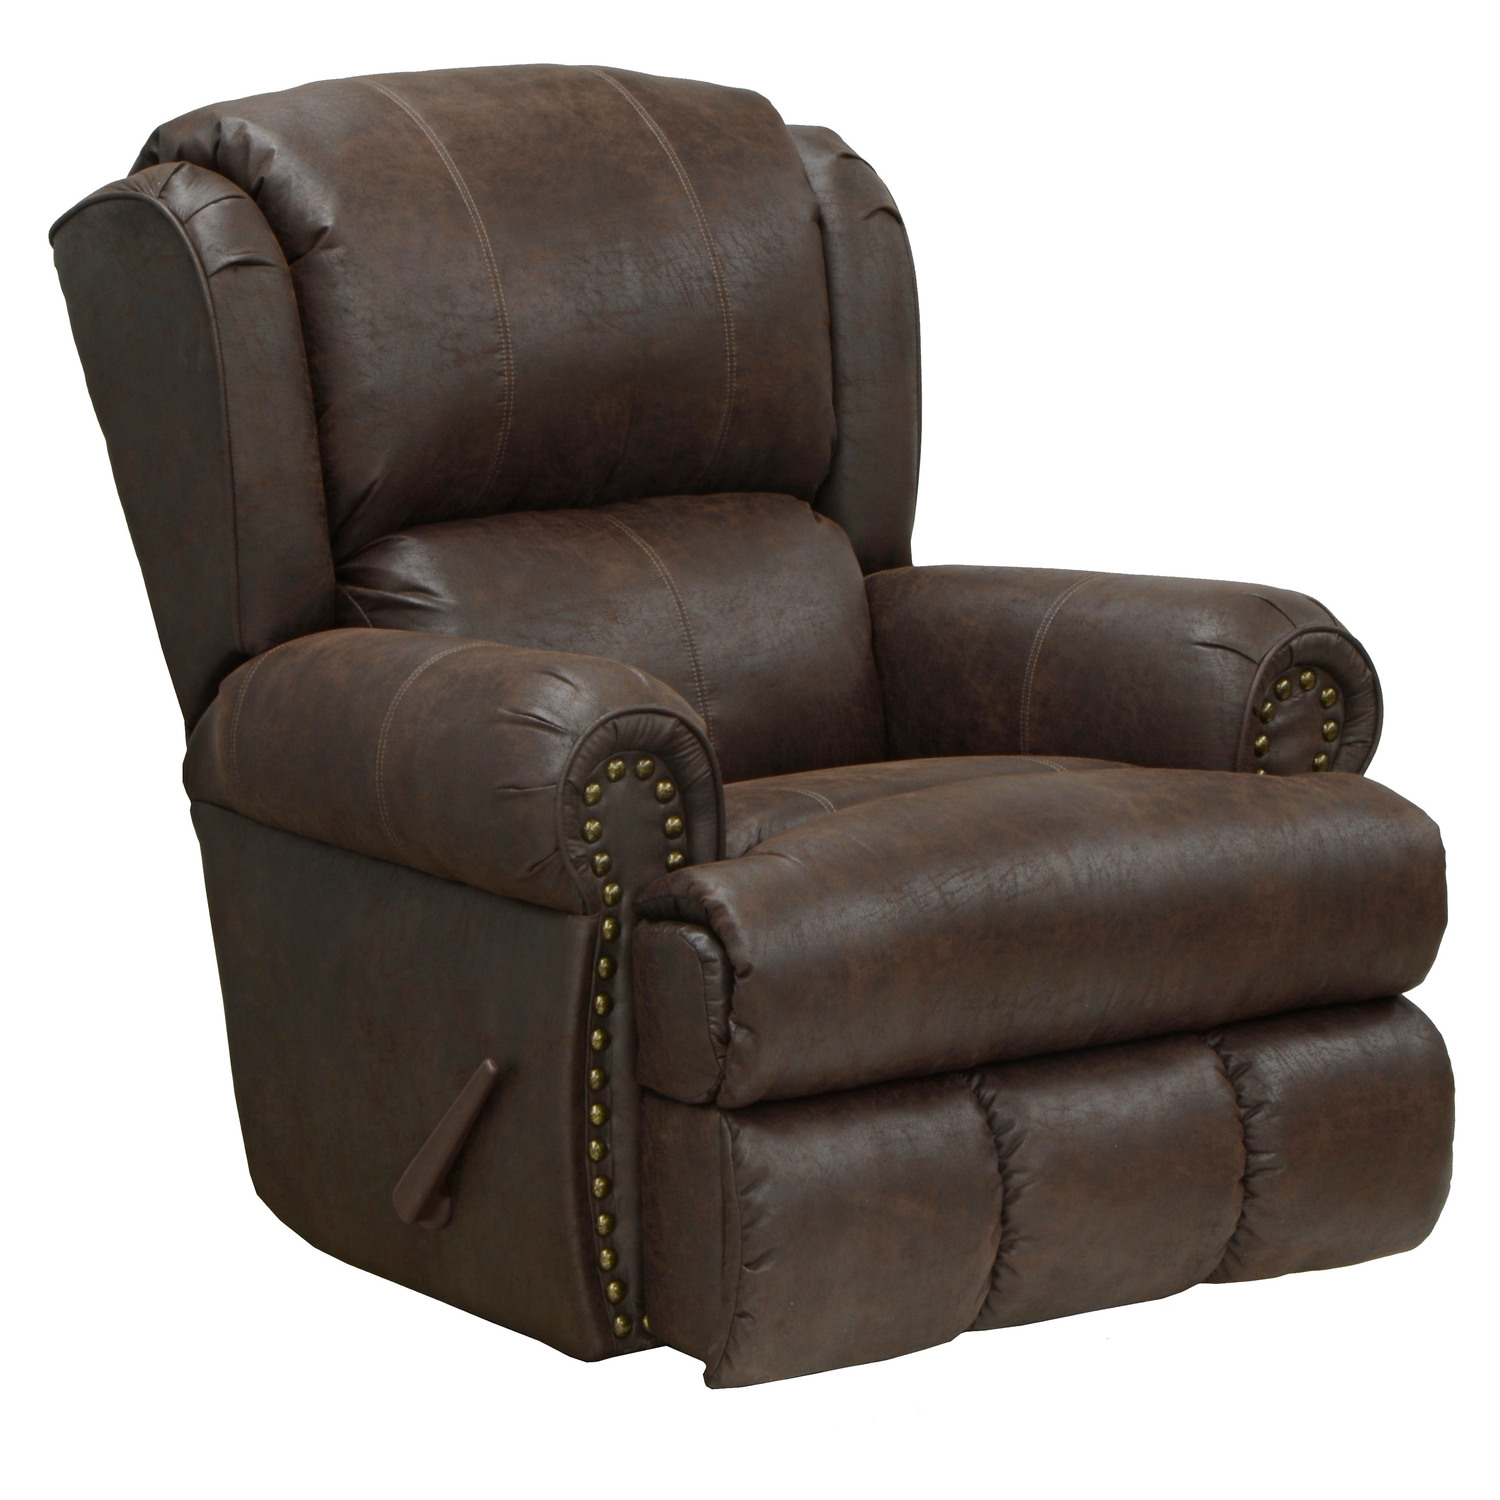 Catnapper Chair Catnapper Dempsey Leather Recliner By Oj Commerce 659 00